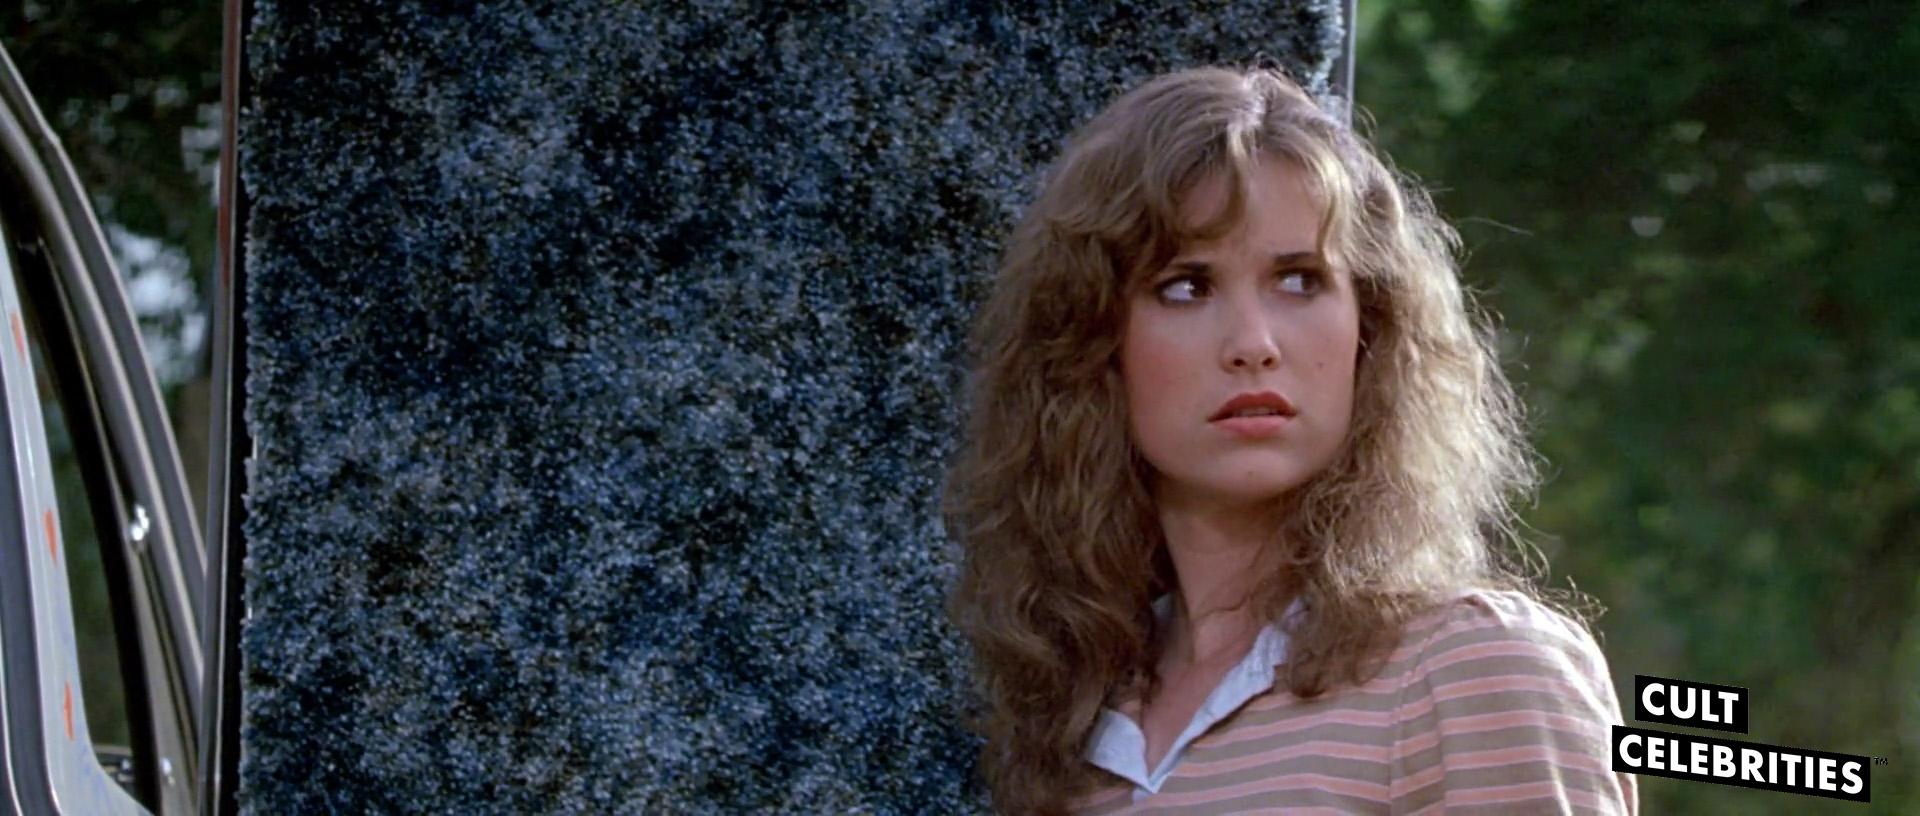 Dana Kimmell in Friday the 13th Part III (1982)